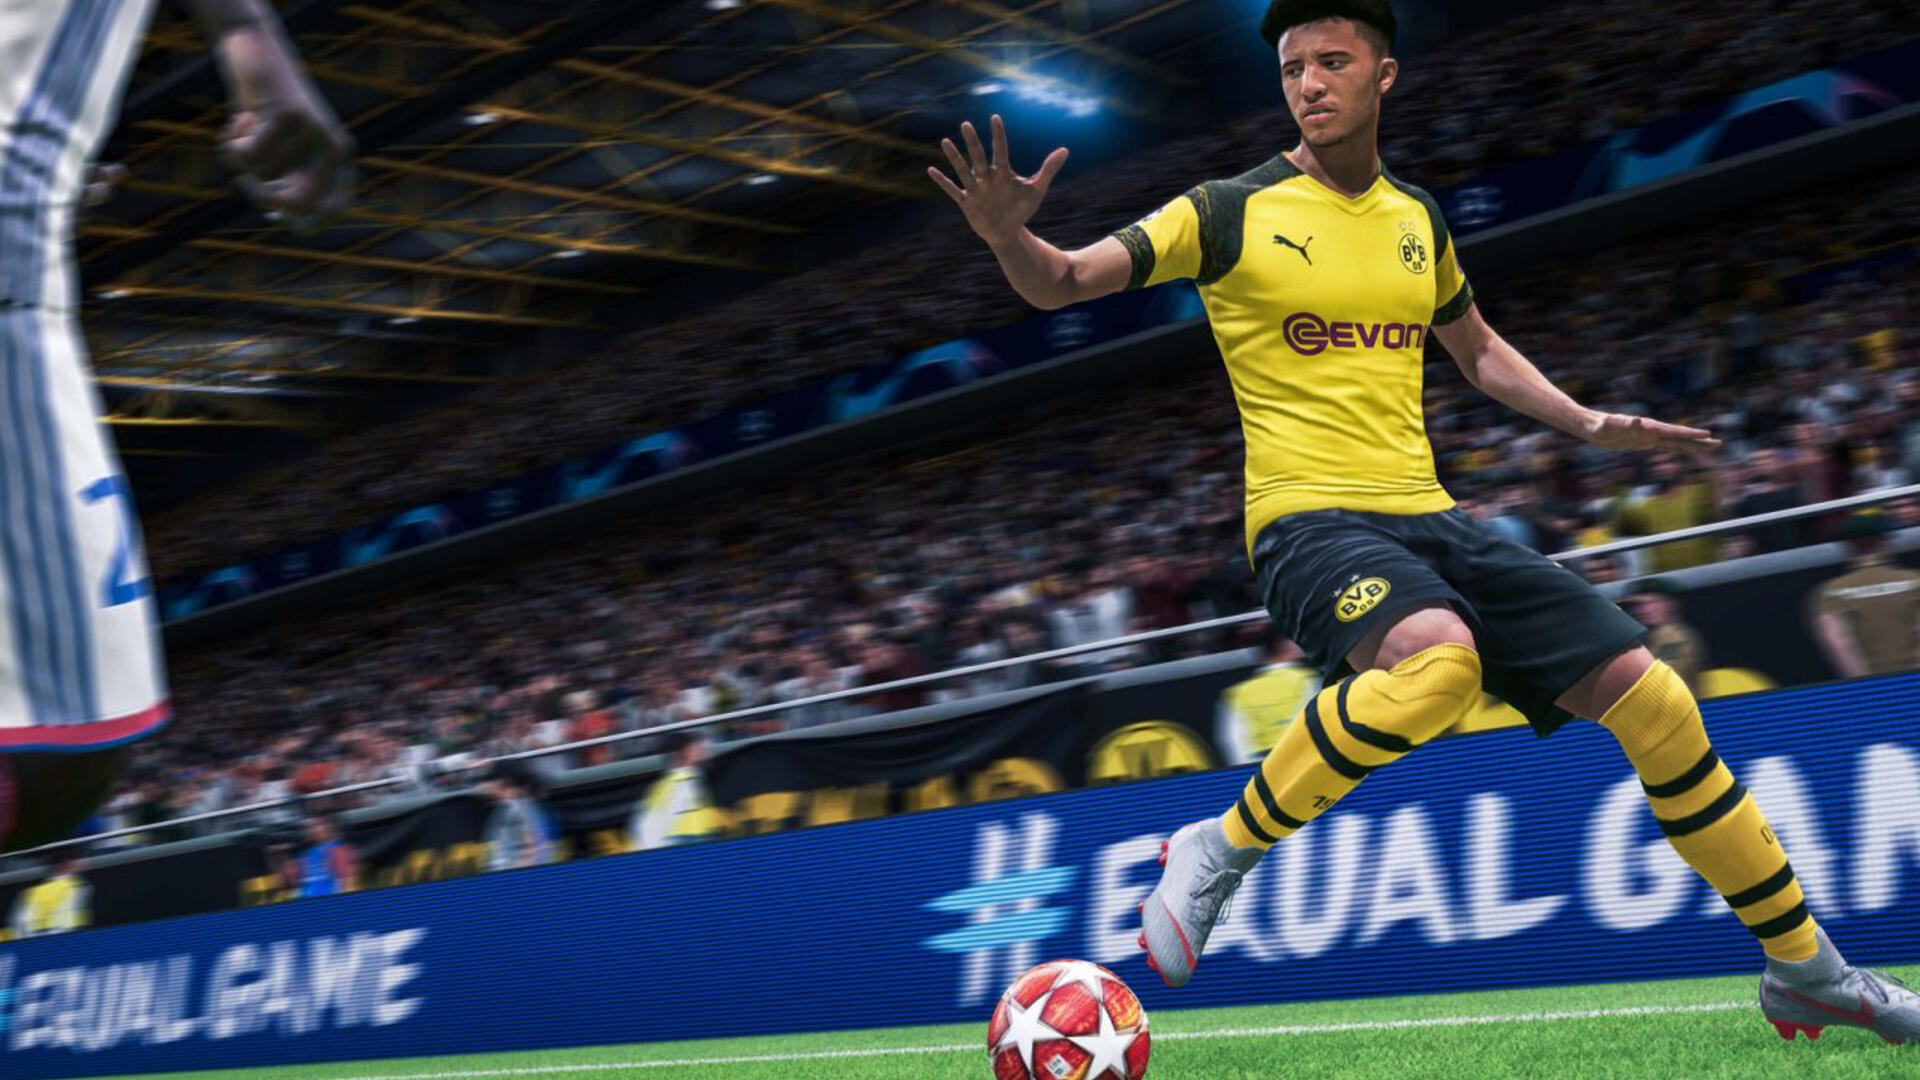 FIFA 20 Career Mode is Finally Getting Some Major Updates